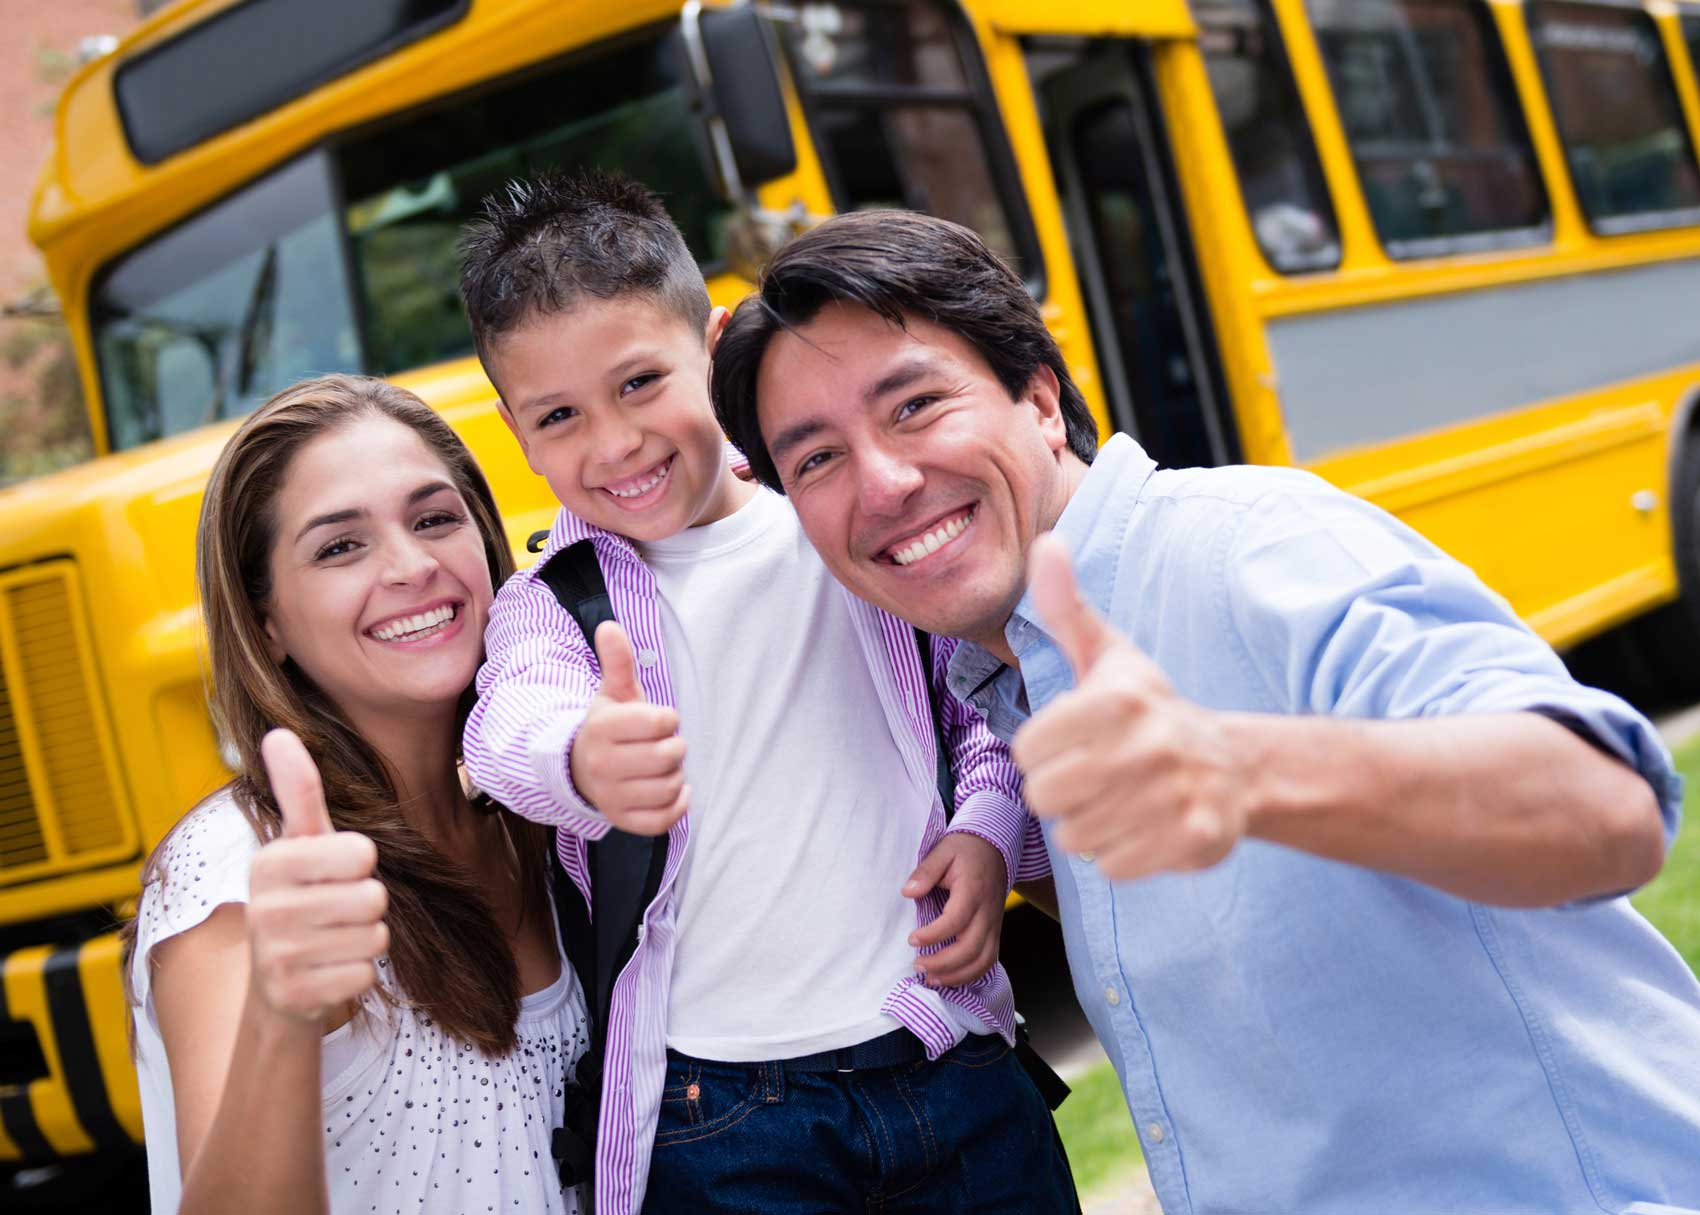 parents tips right awesome reasons choosing parent why rejoice parental students